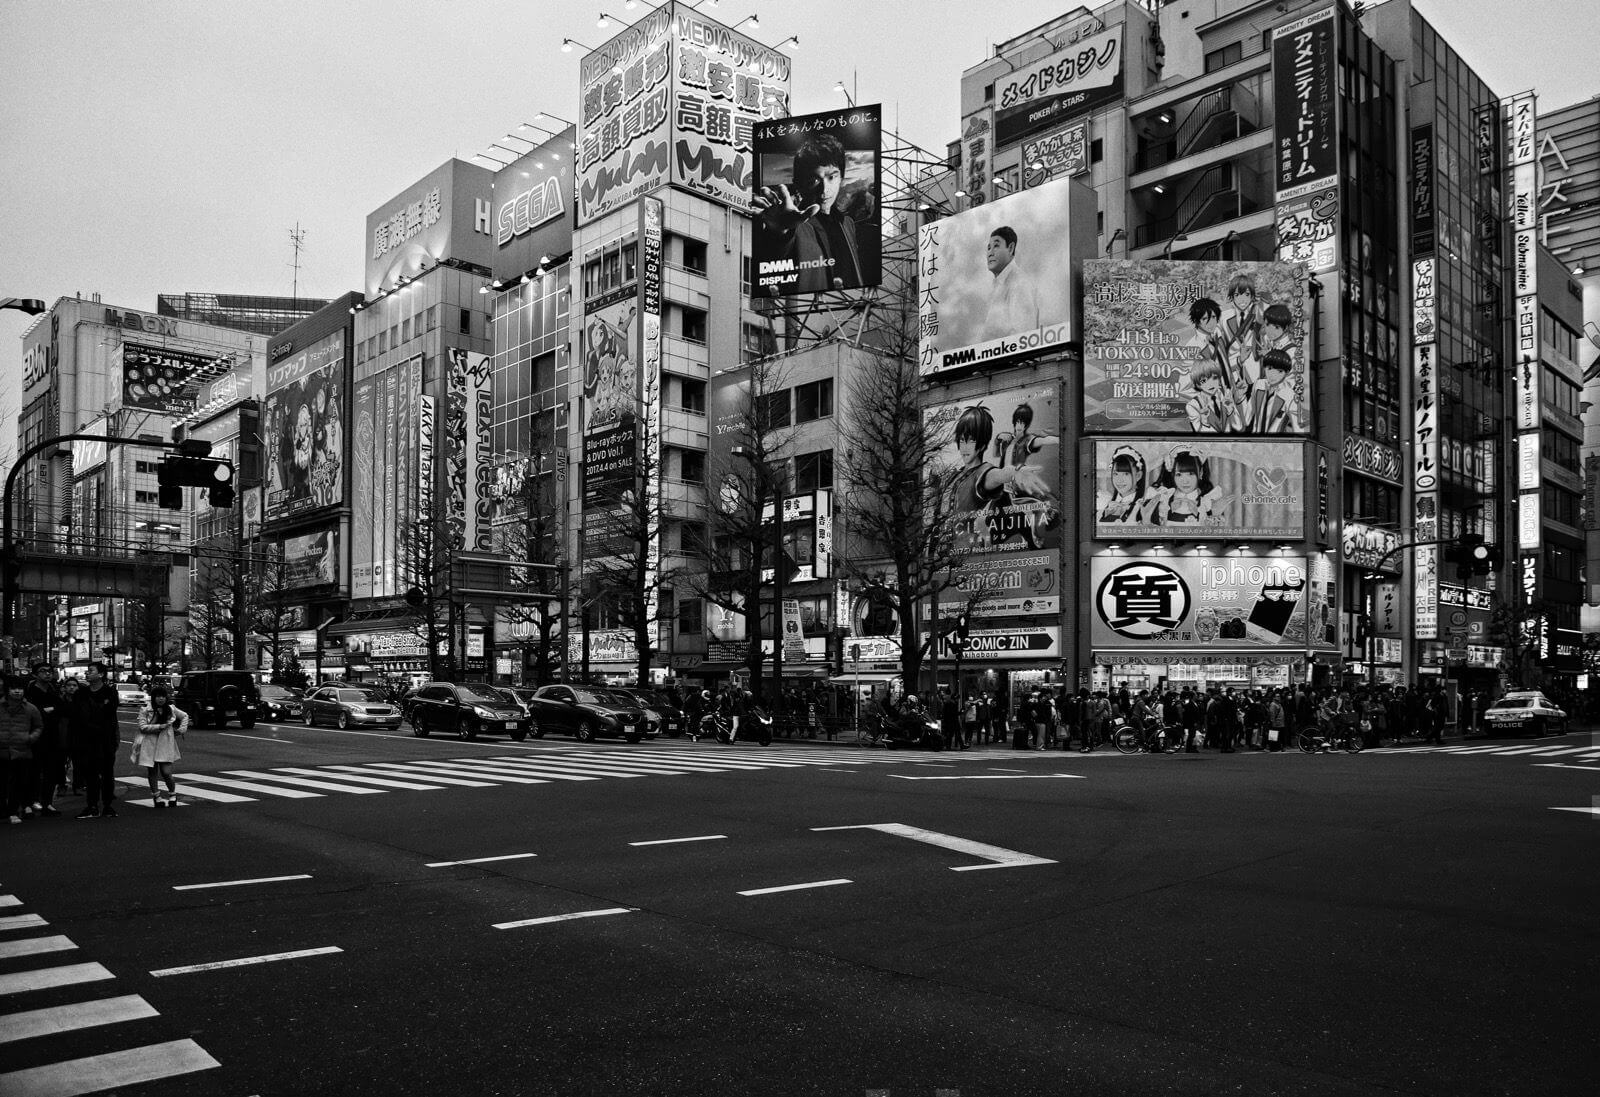 Busy street at Akihabara, Tokyo - Photo by Zdenek Sindelar of CuriousZed Photography